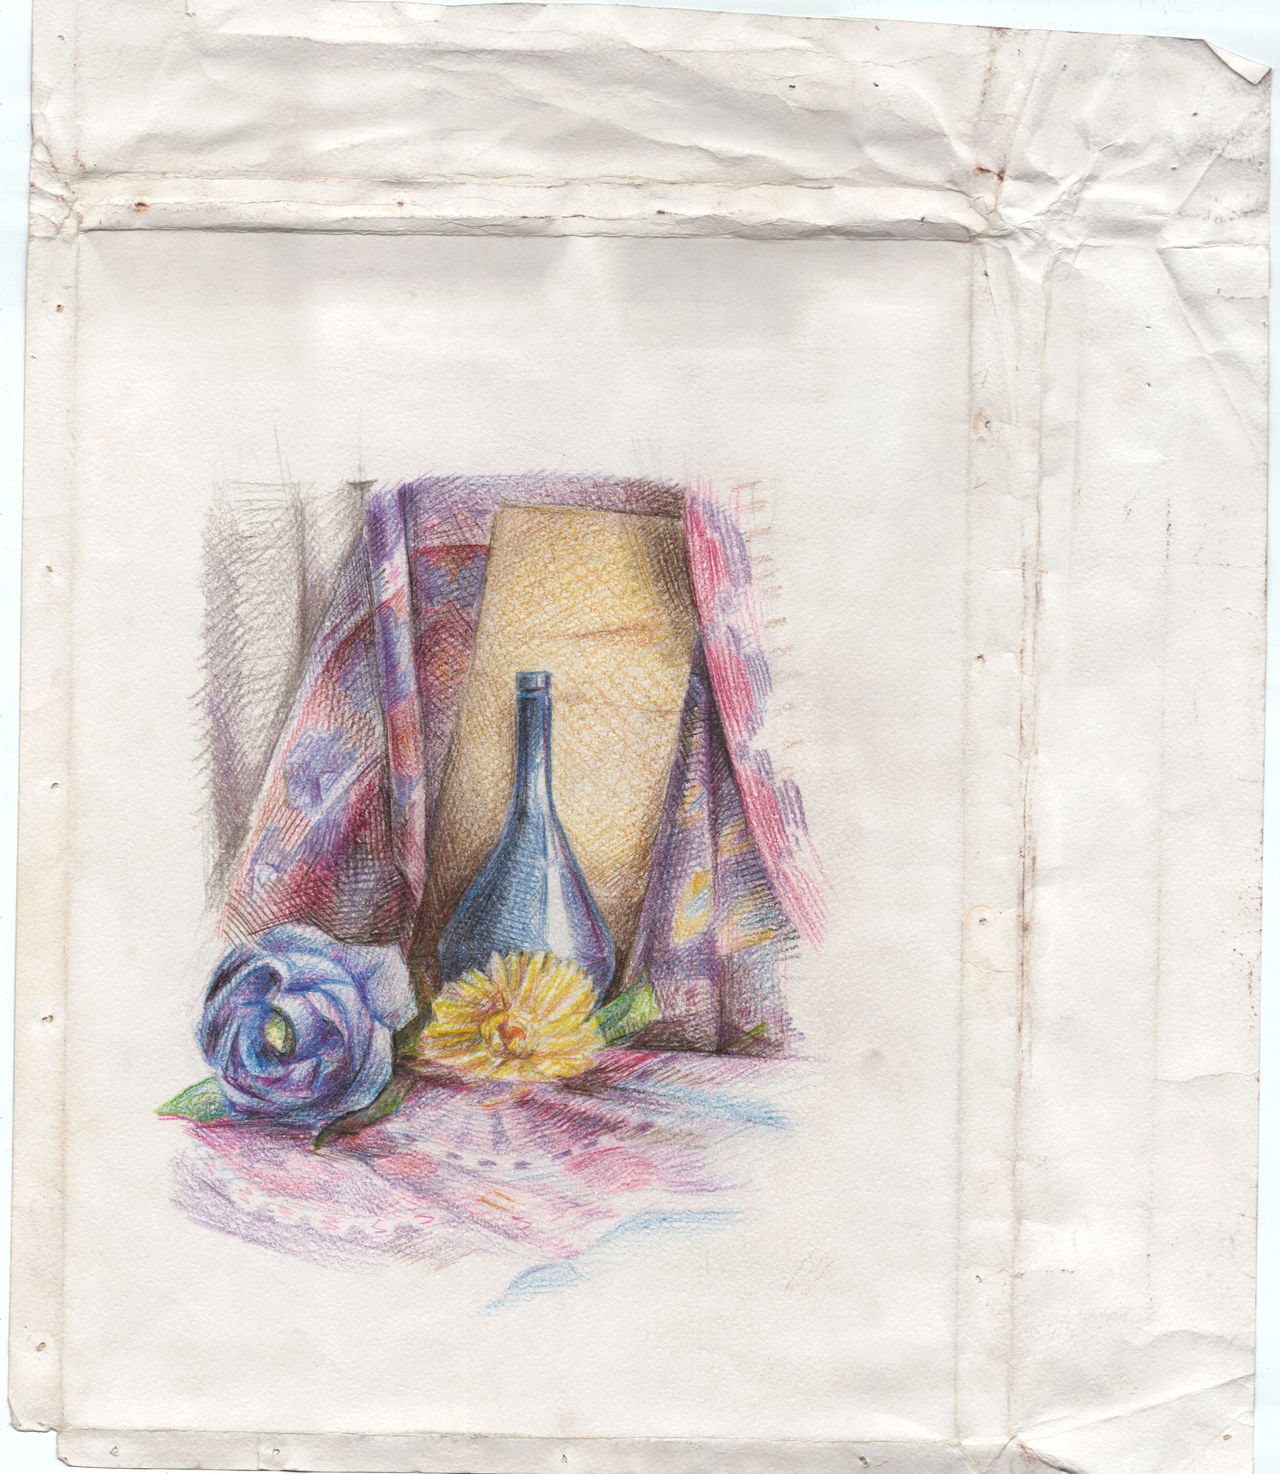 Stady Sketch Studentwork Art Stady Craftpaper ArtWork Indoors  Handmade Pencil Art Sketching Exebithion Jag Flower Flower Head Flower Nature Naturmort Crop  OldPaper Old Paper Colored Pencil